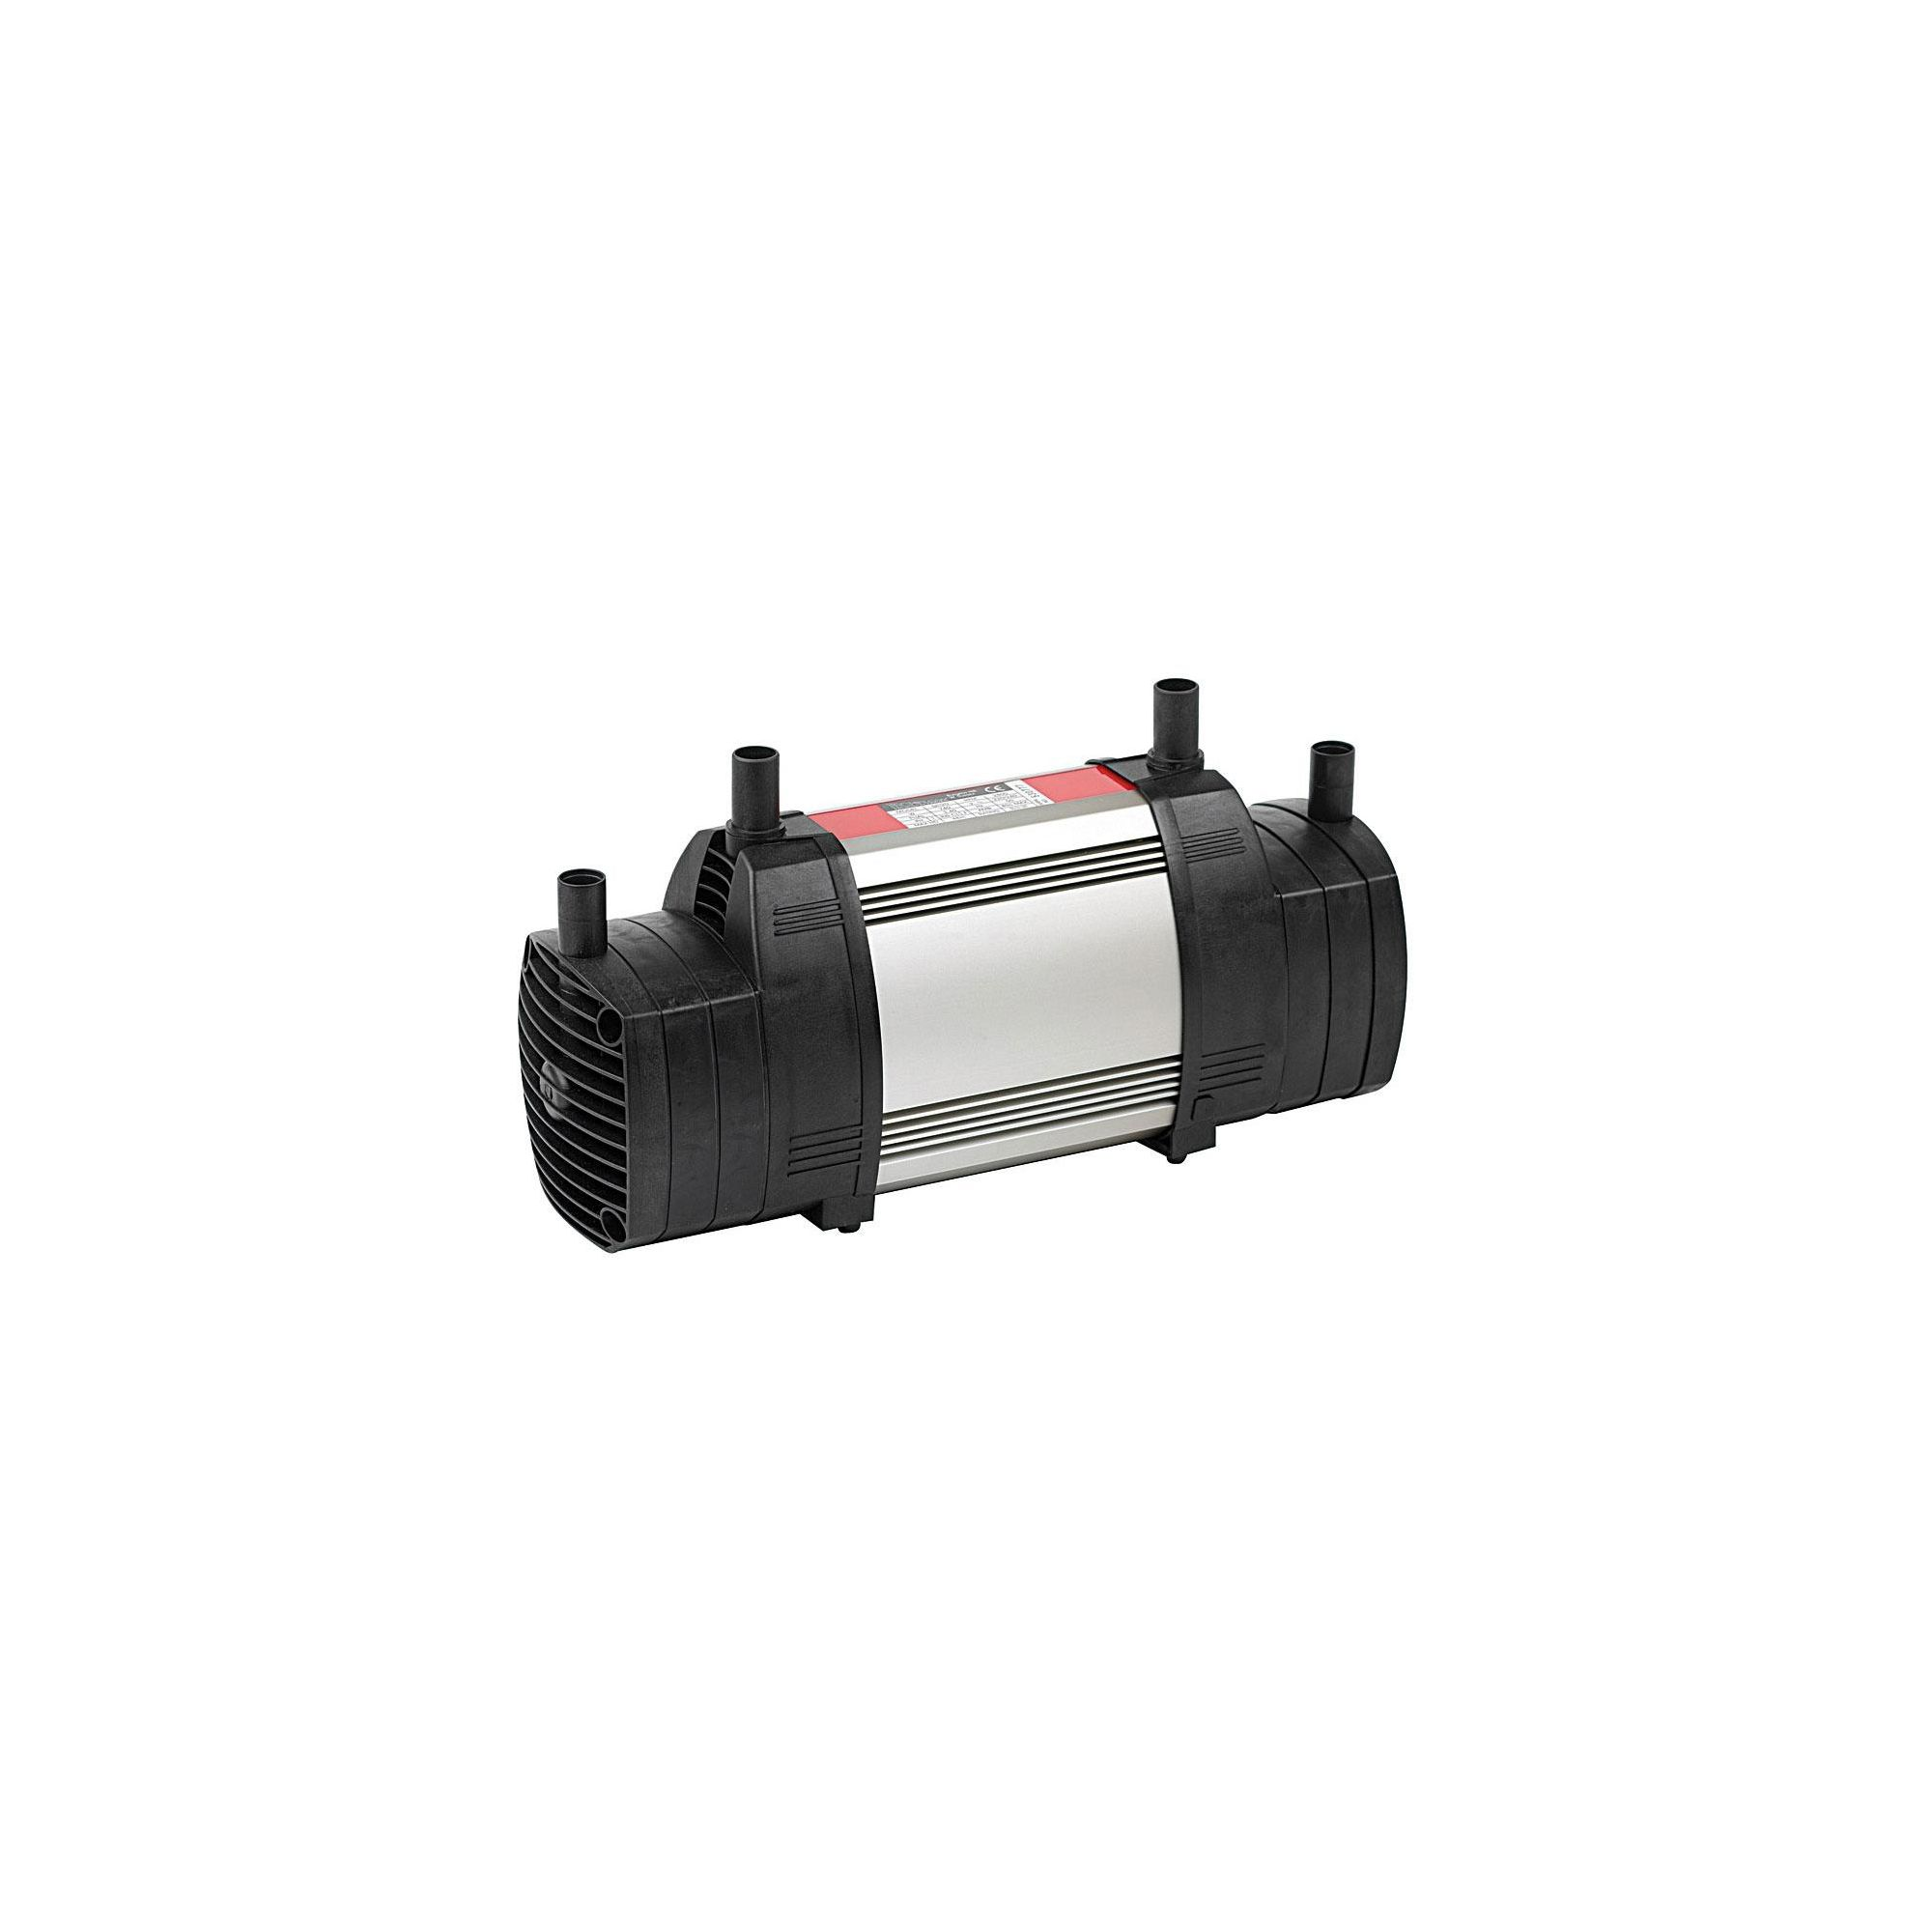 Sagittarius Techflow QT Twin Shower Pump - 3.3 Bar at Tesco Direct